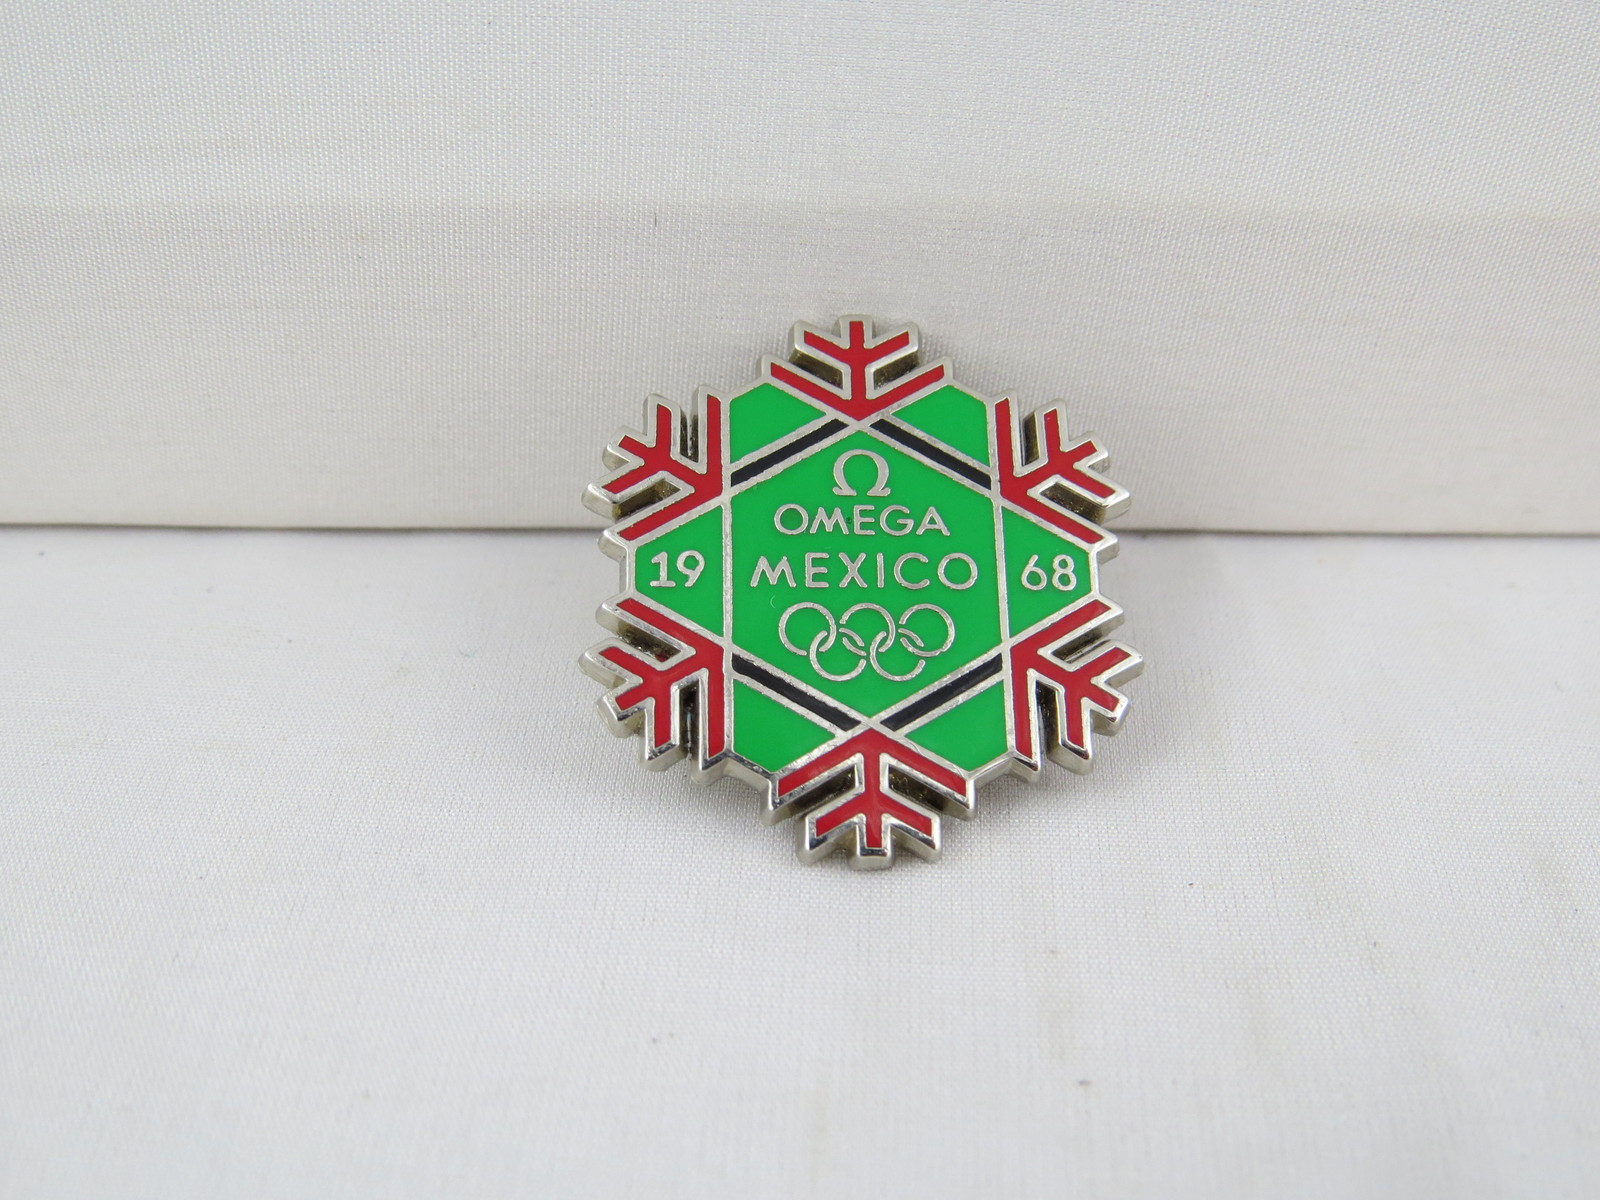 Vancouver Winter Olympic Games Pin - Omega Mexico City Promo pin -Event Giveaway